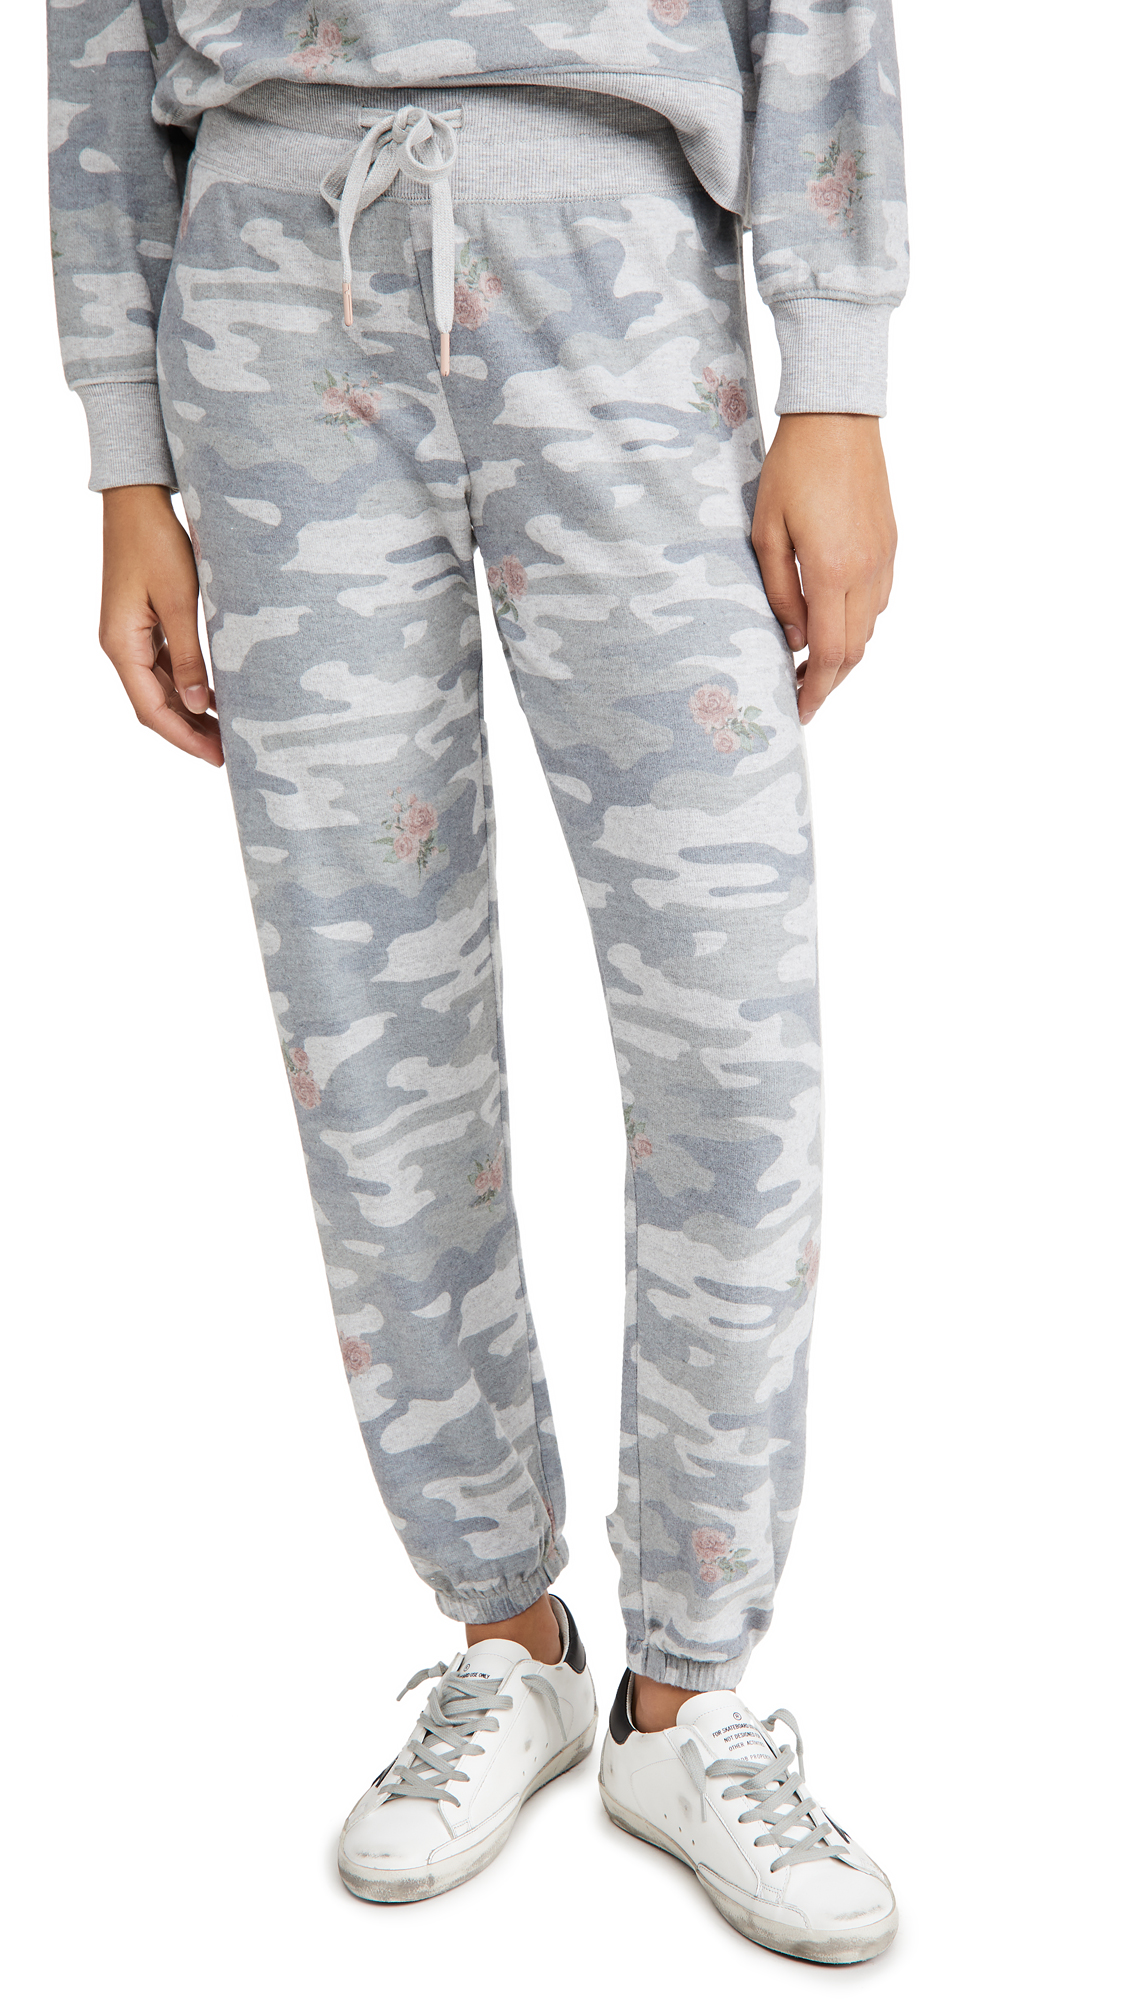 Z Supply Ava Rose Camo Joggers